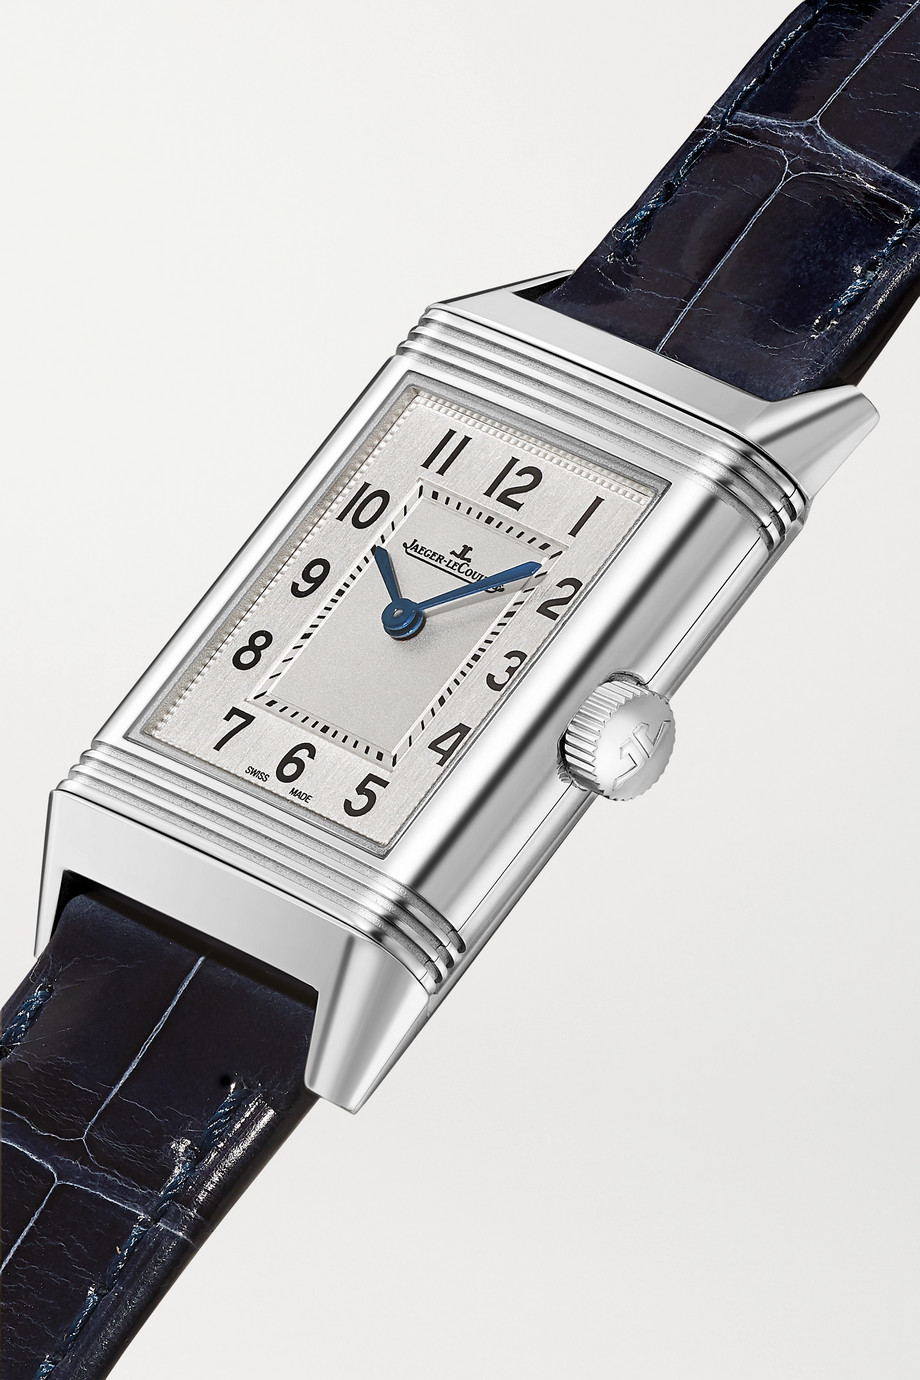 Jaeger-LeCoultre Reverso Classic Small 21mm stainless steel and alligator watch